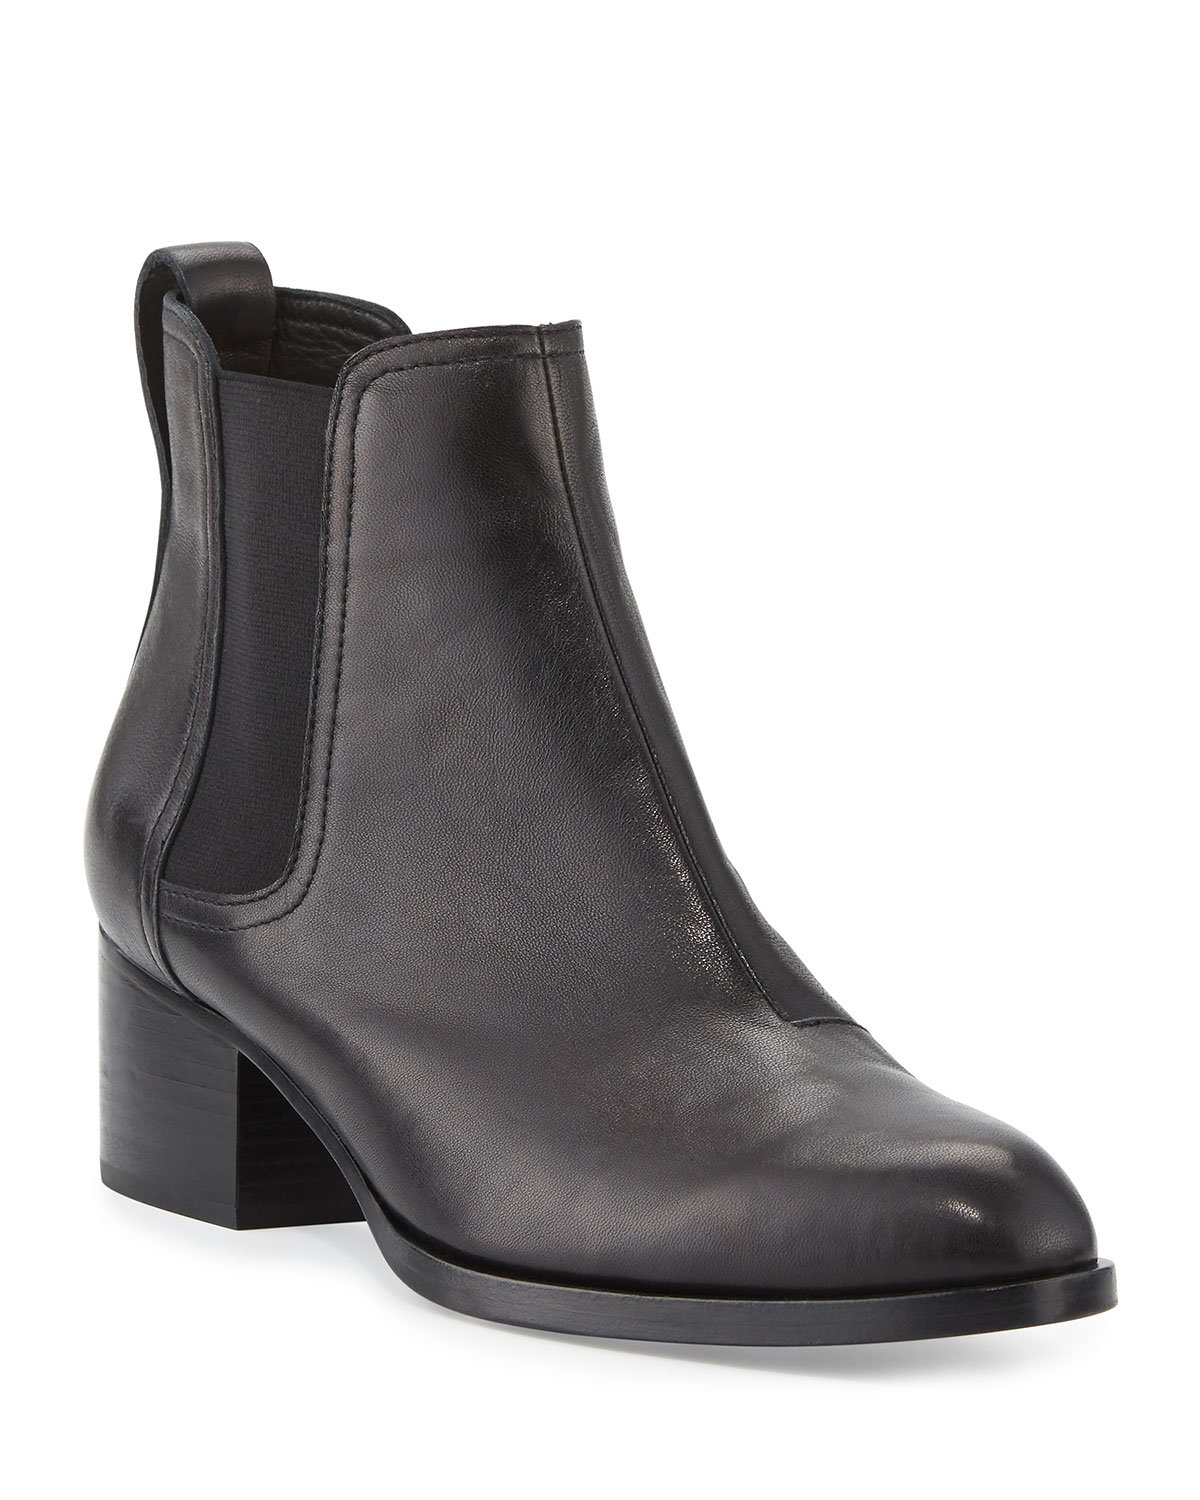 c4a0ae5bbca3 Rag   Bone Walker Leather Ankle Boots